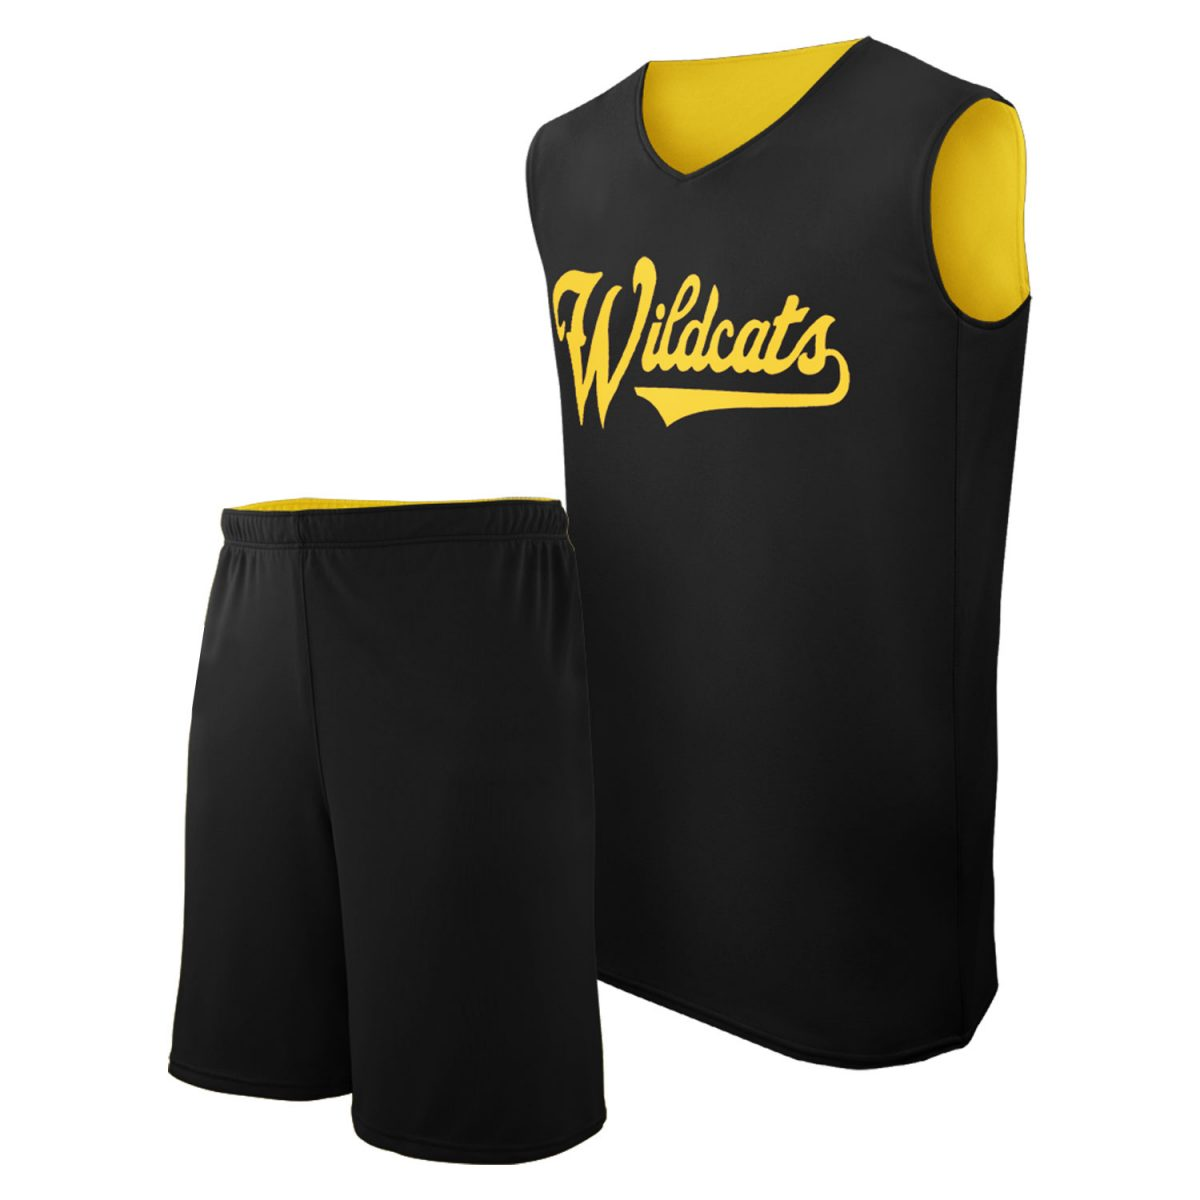 Boys Basketball Uniforms Manufacturers in Bikaner